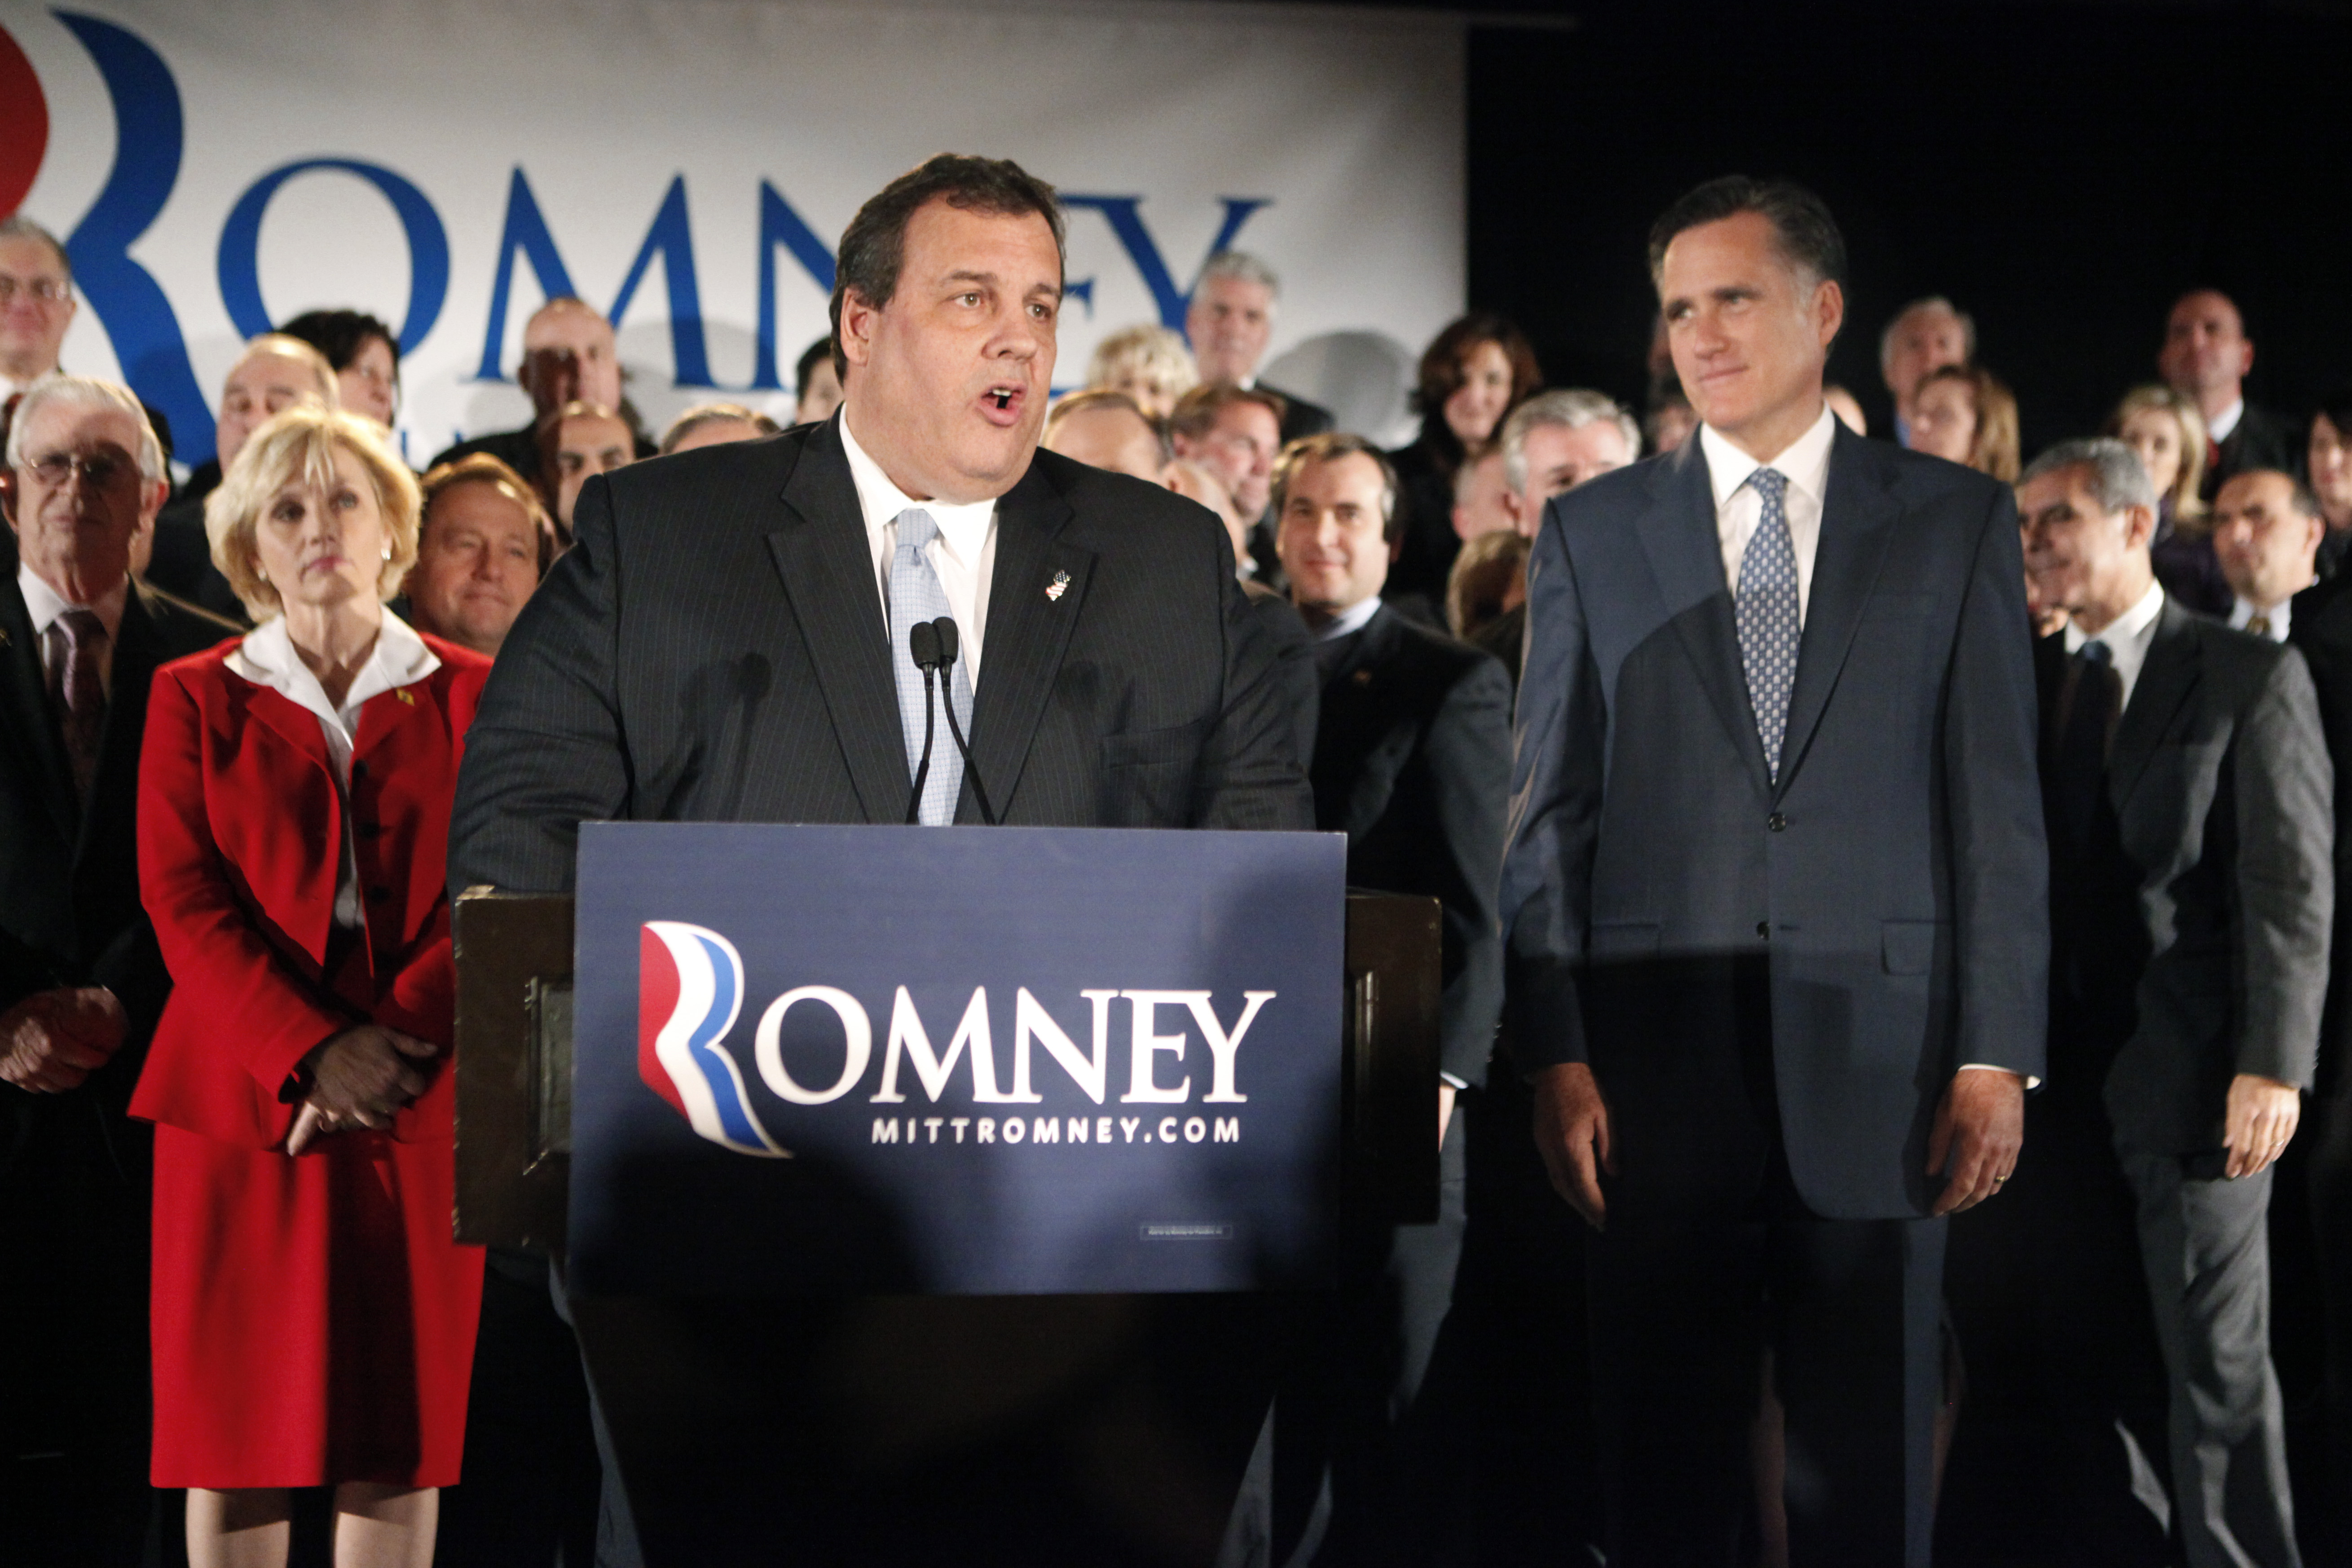 Gov. Chris Christie introduces Republican presidential nominee Mitt Romney at a campaign fundraiser in December.